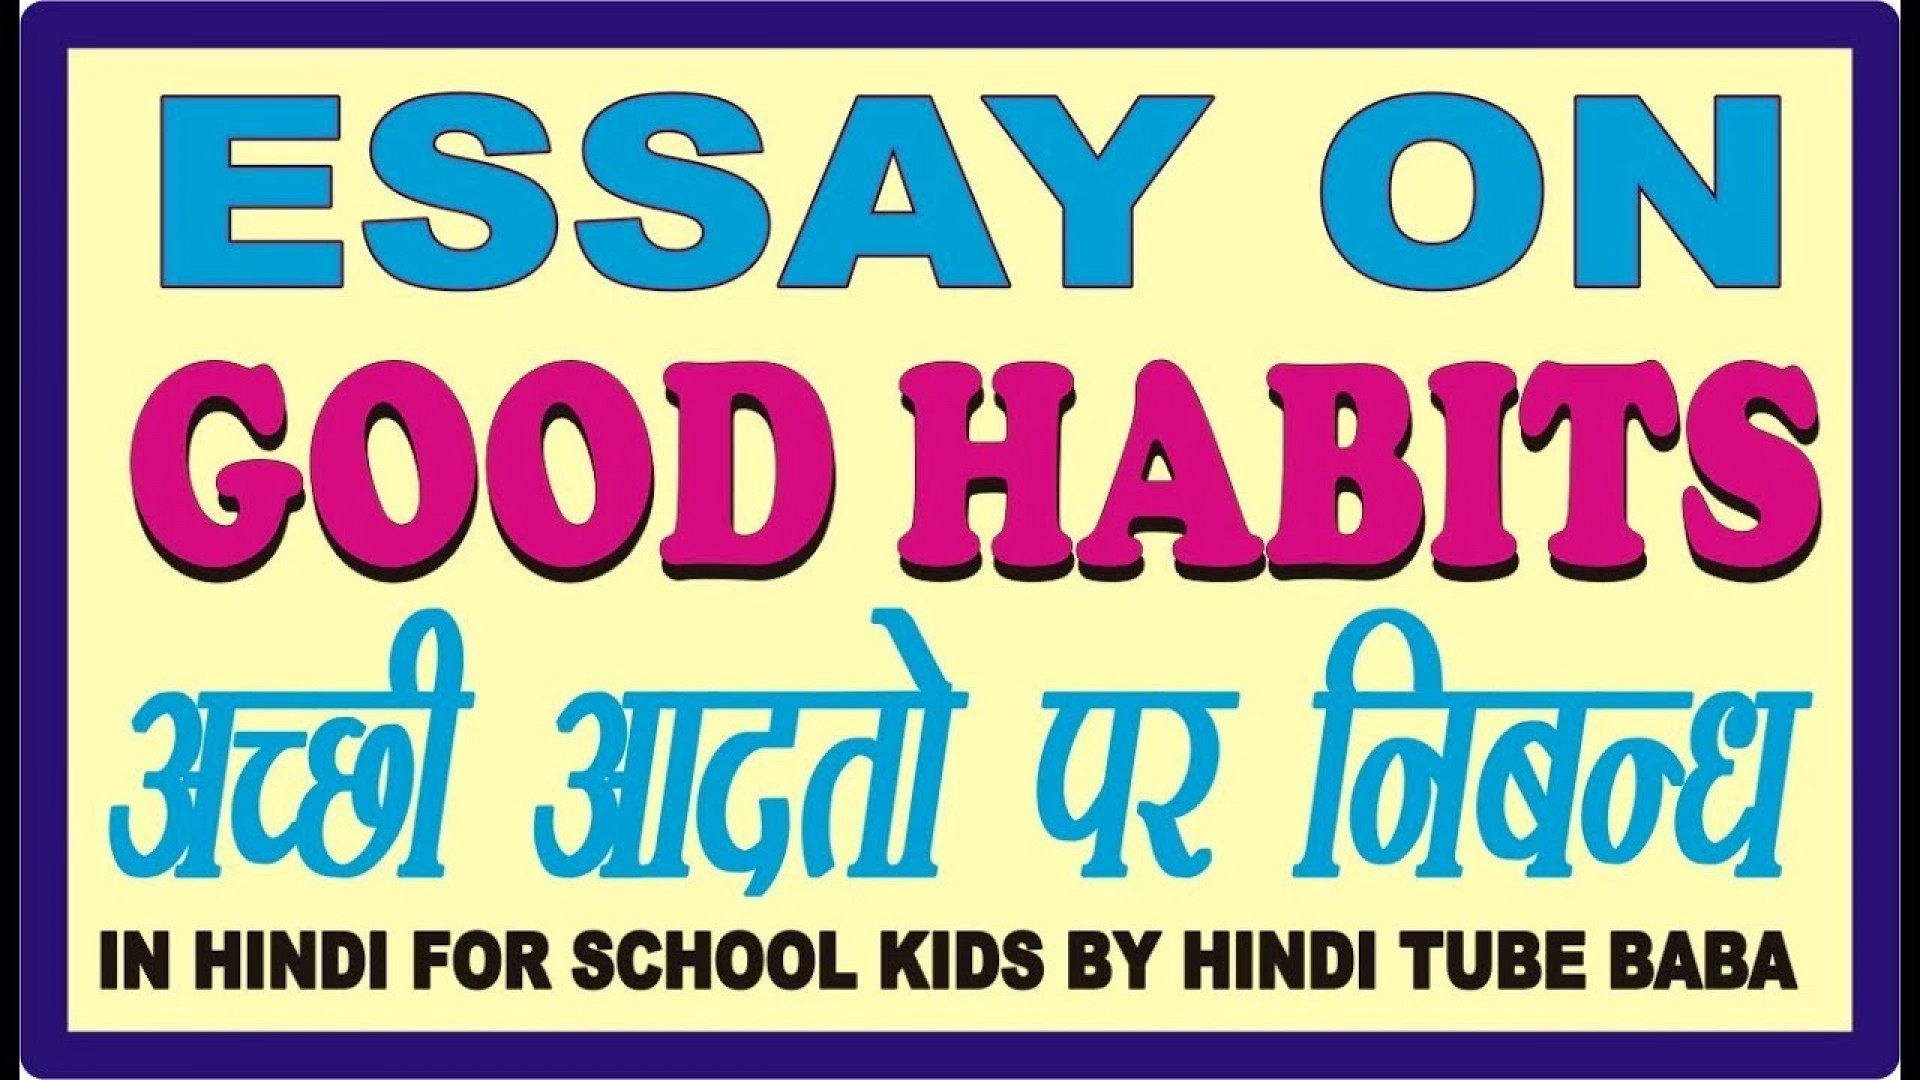 006 Good Habits Essay In Hindi Maxresdefault Exceptional Food Habit 1920